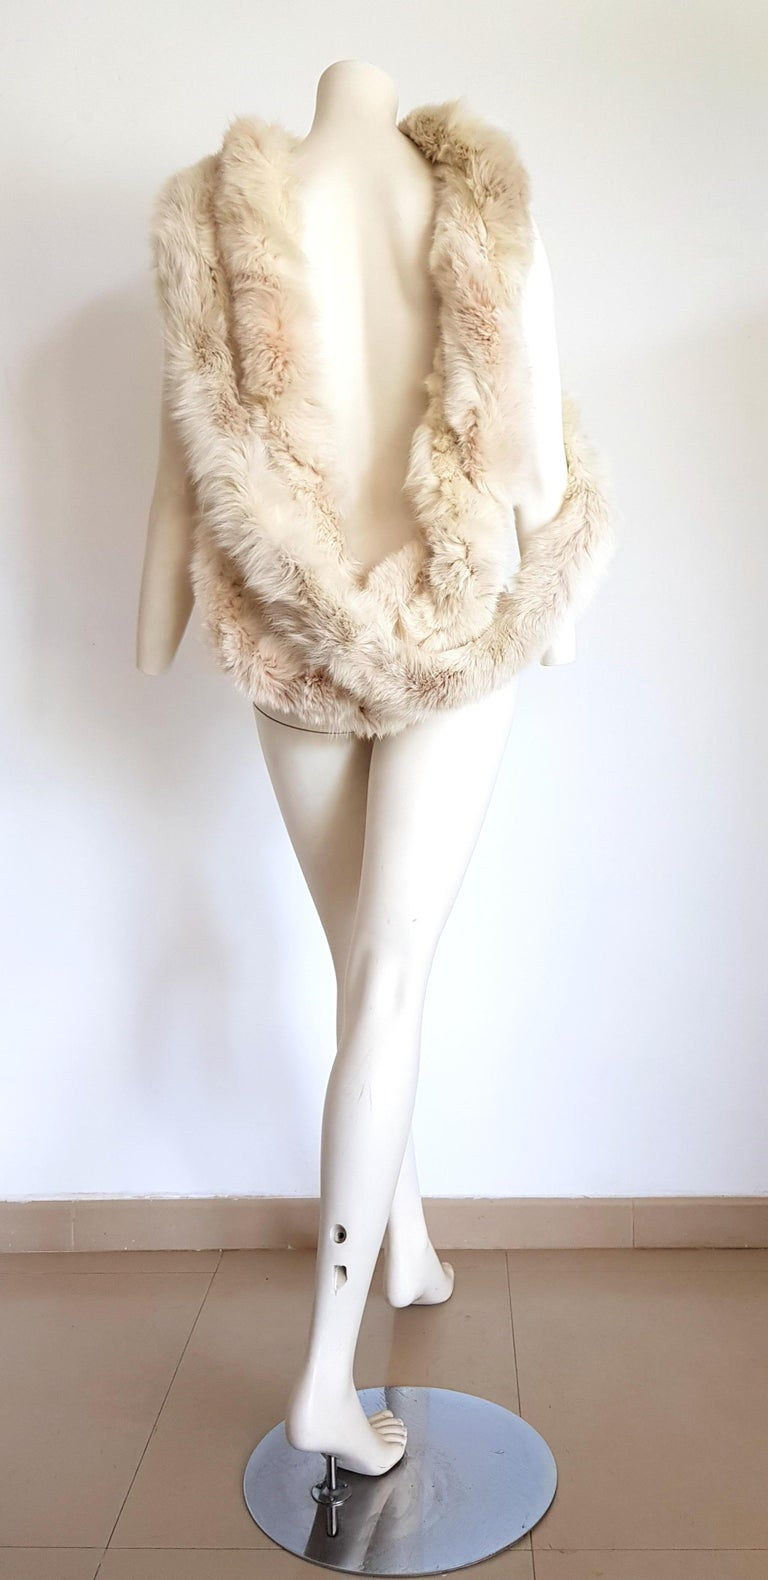 MALO Cream Wild Arctic Silver Fox Round Shape Fur Scarf - Unworn, New. The cream color in silver fox is very rare and esteemed.  SIZE: Lenght, or total circunference: 720 cm. Diameter: 10 cm. TO CONVERT: cm x 0.39 = inch. By